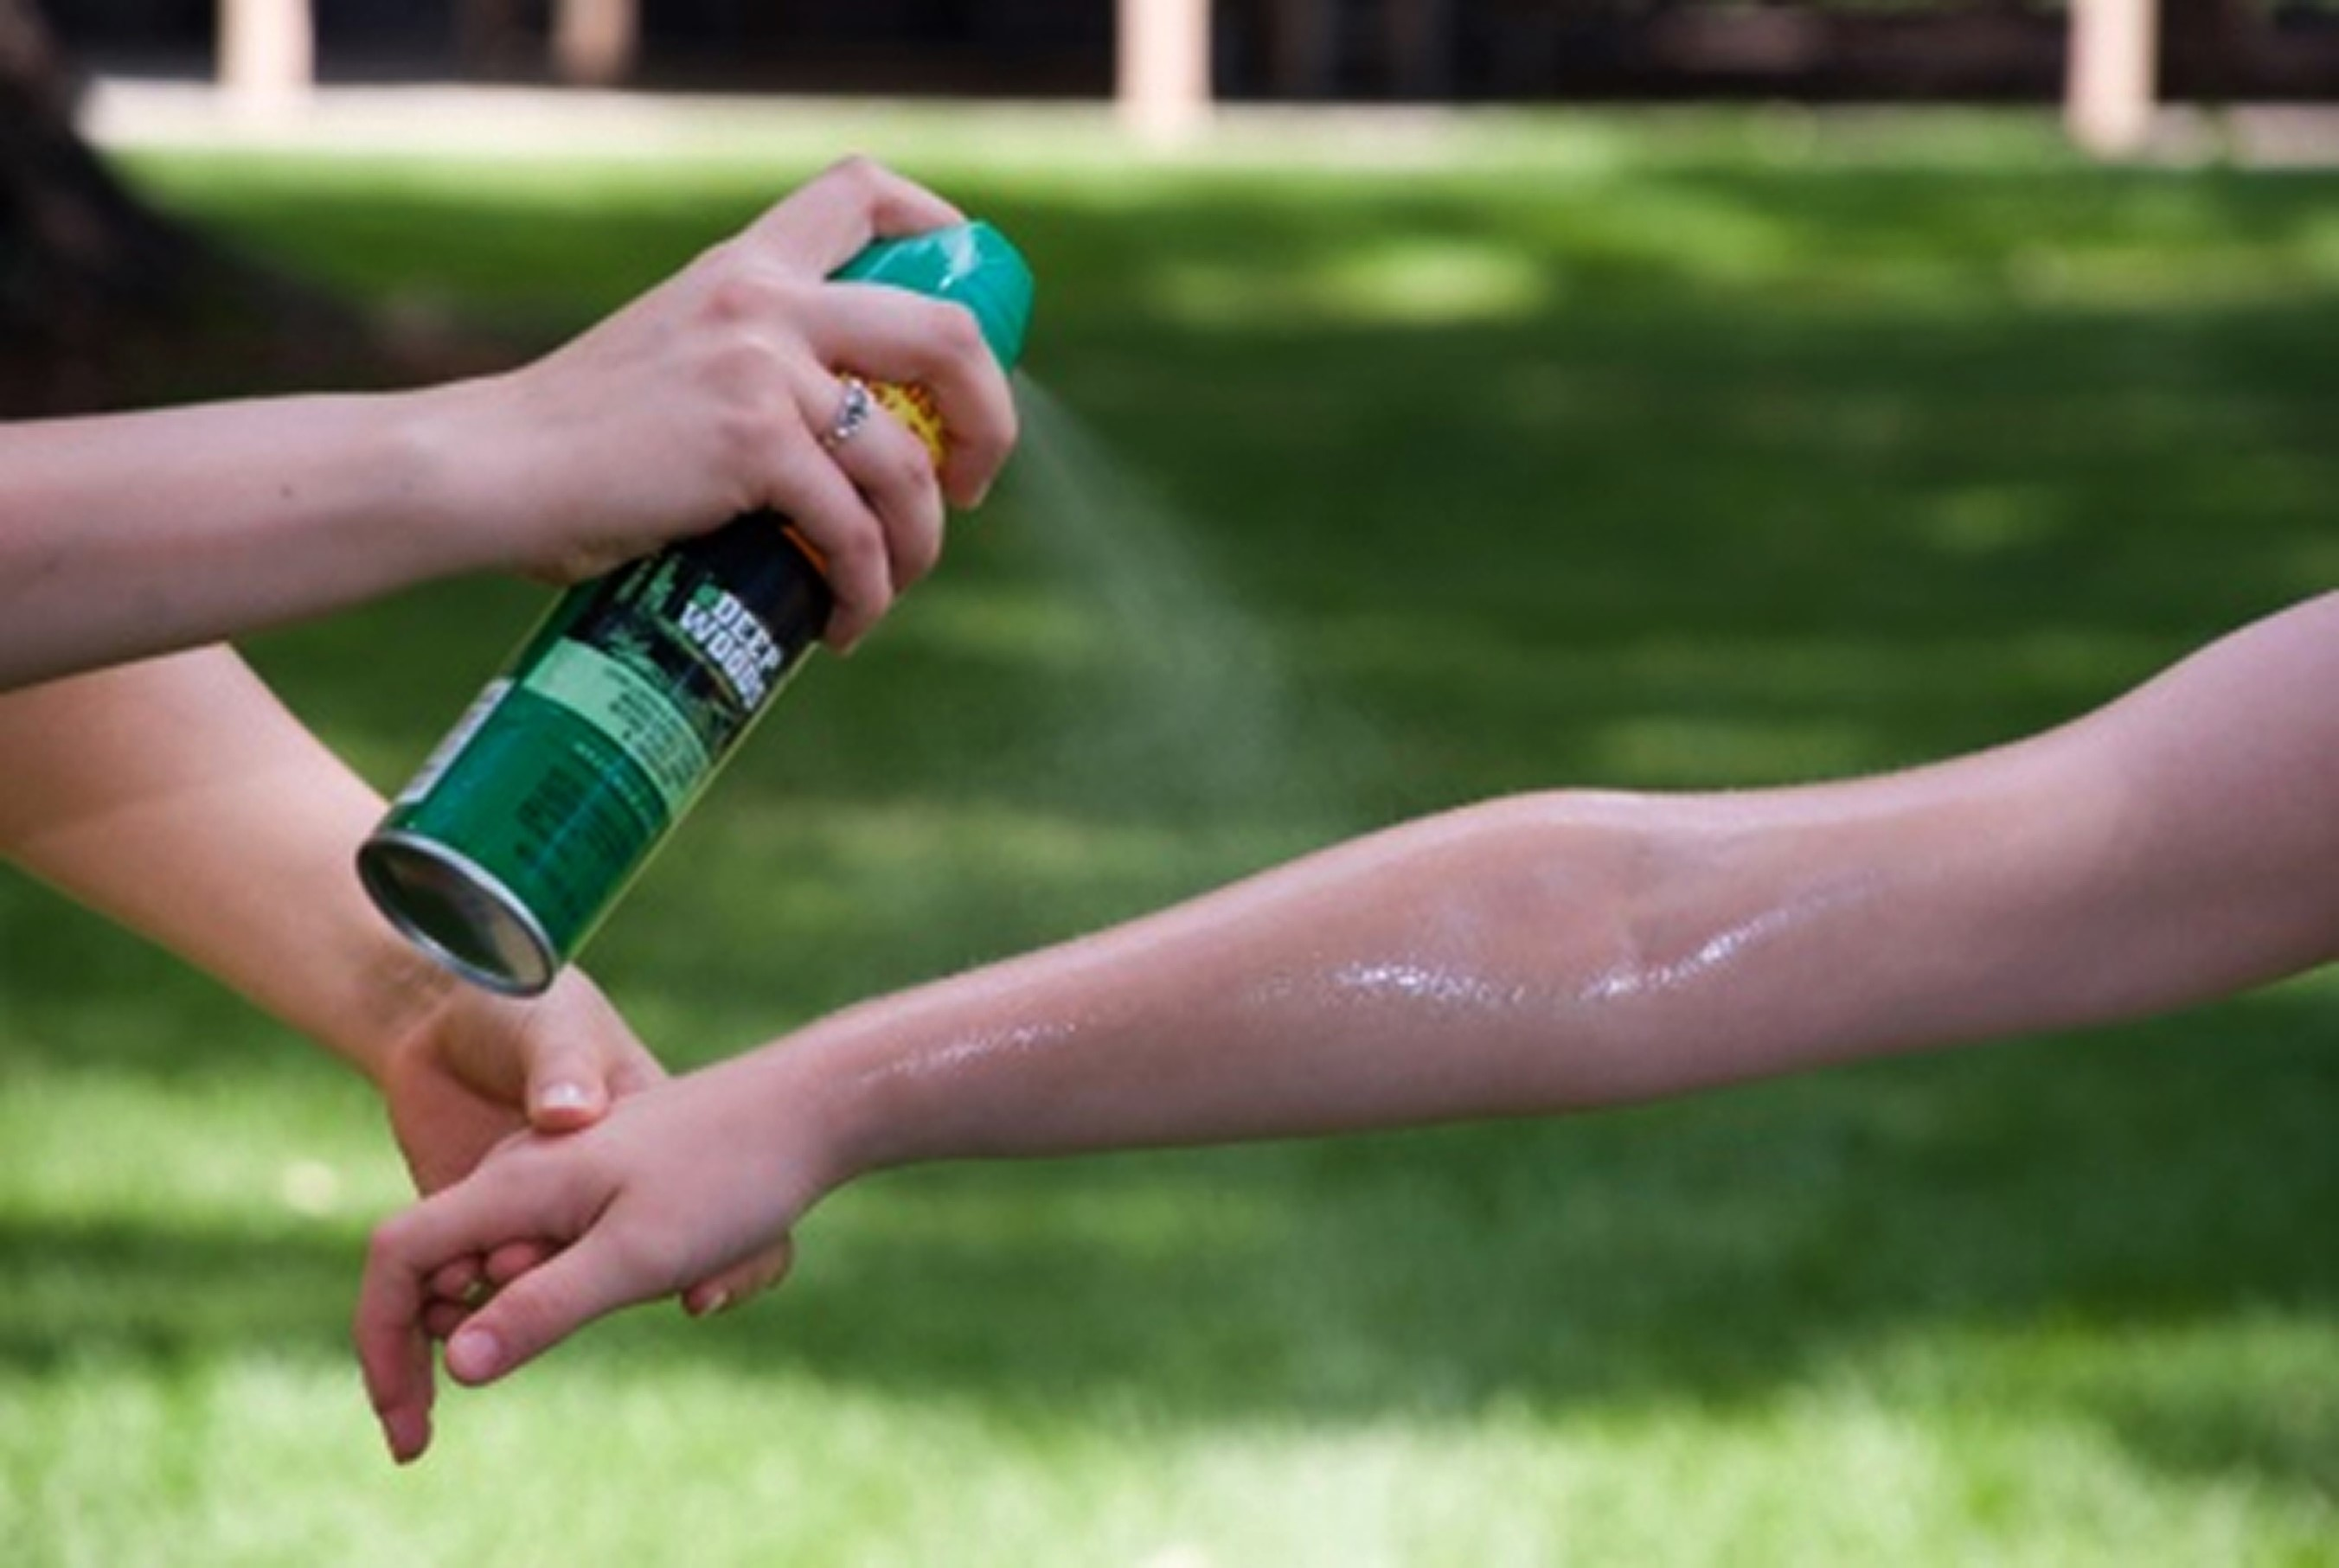 Applying insect repellent